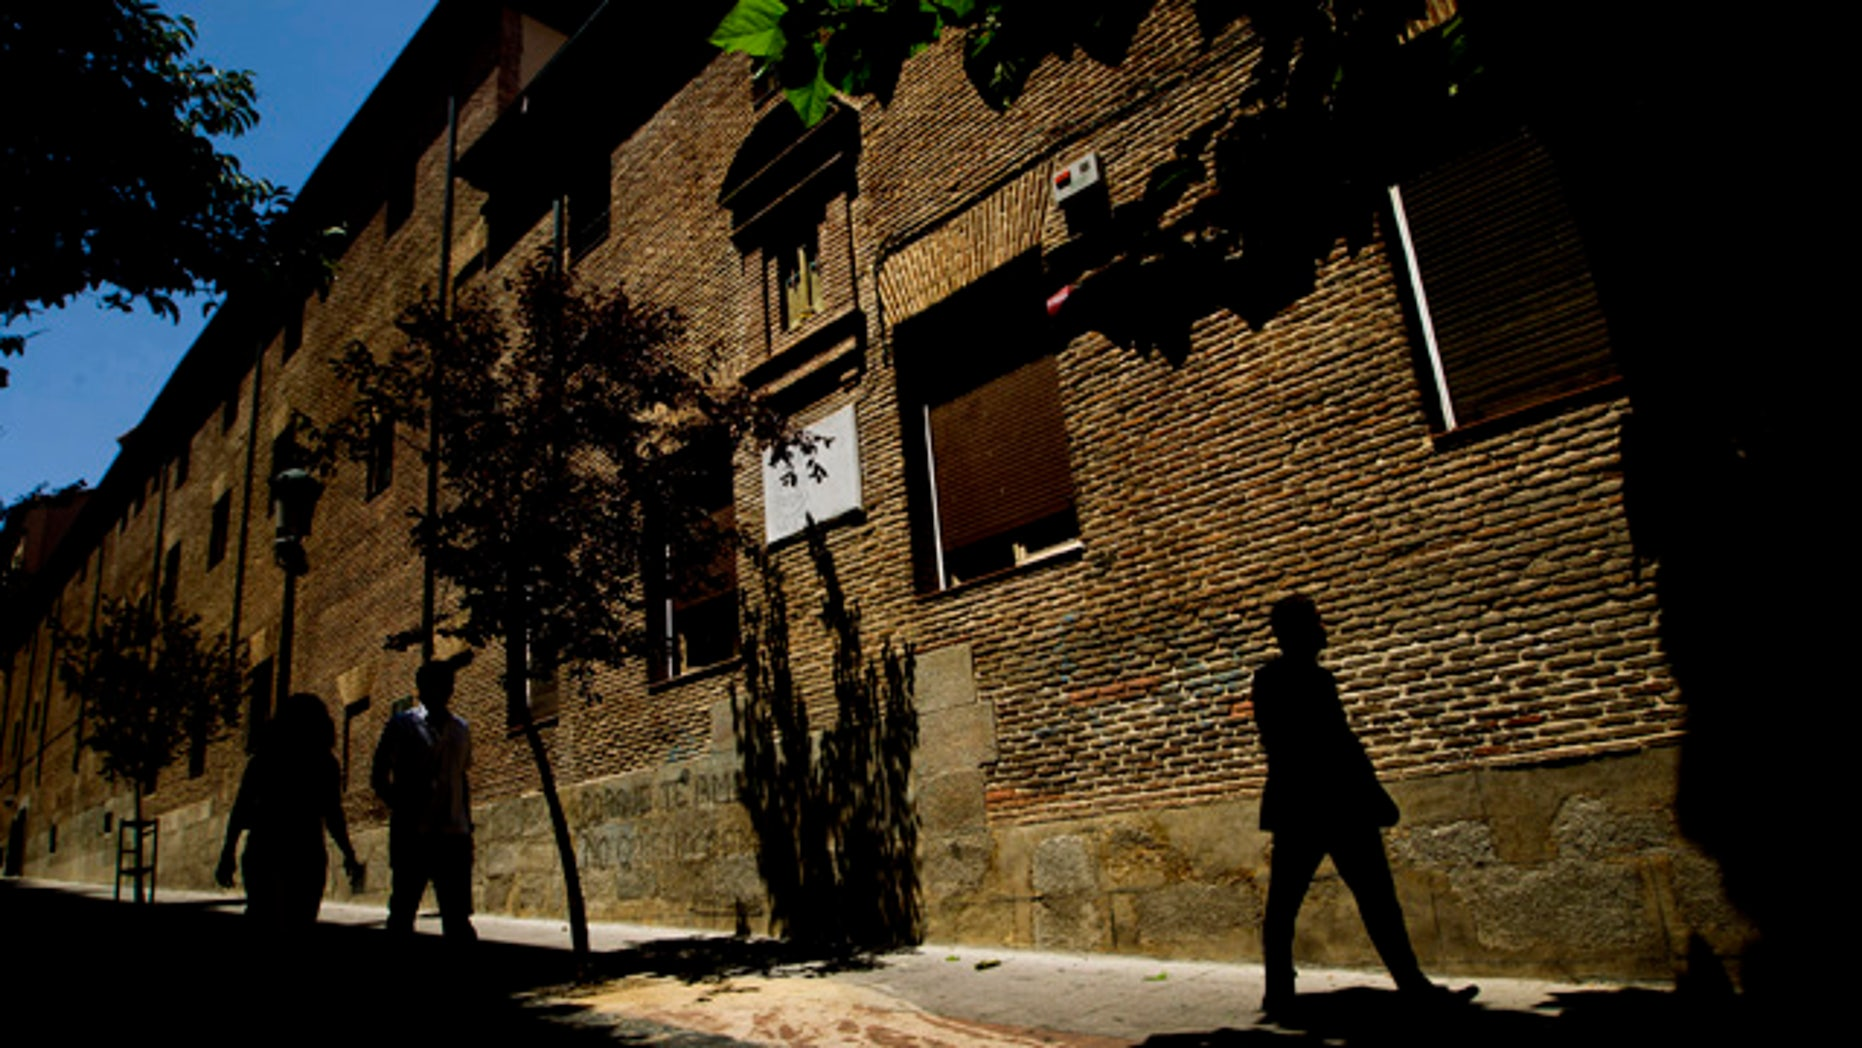 FILE - In this July 28, 2011 file photo, pedestrians walk by the closed order convent of the Trinitarias Descalzas, where the Spanish writer Miguel de Cervantes, author of  El Quijojte, was buried in Madrid, Spain. His coffin and remains were lost during construction work at the church. (AP Photo/Daniel Ochoa de Olza, File)